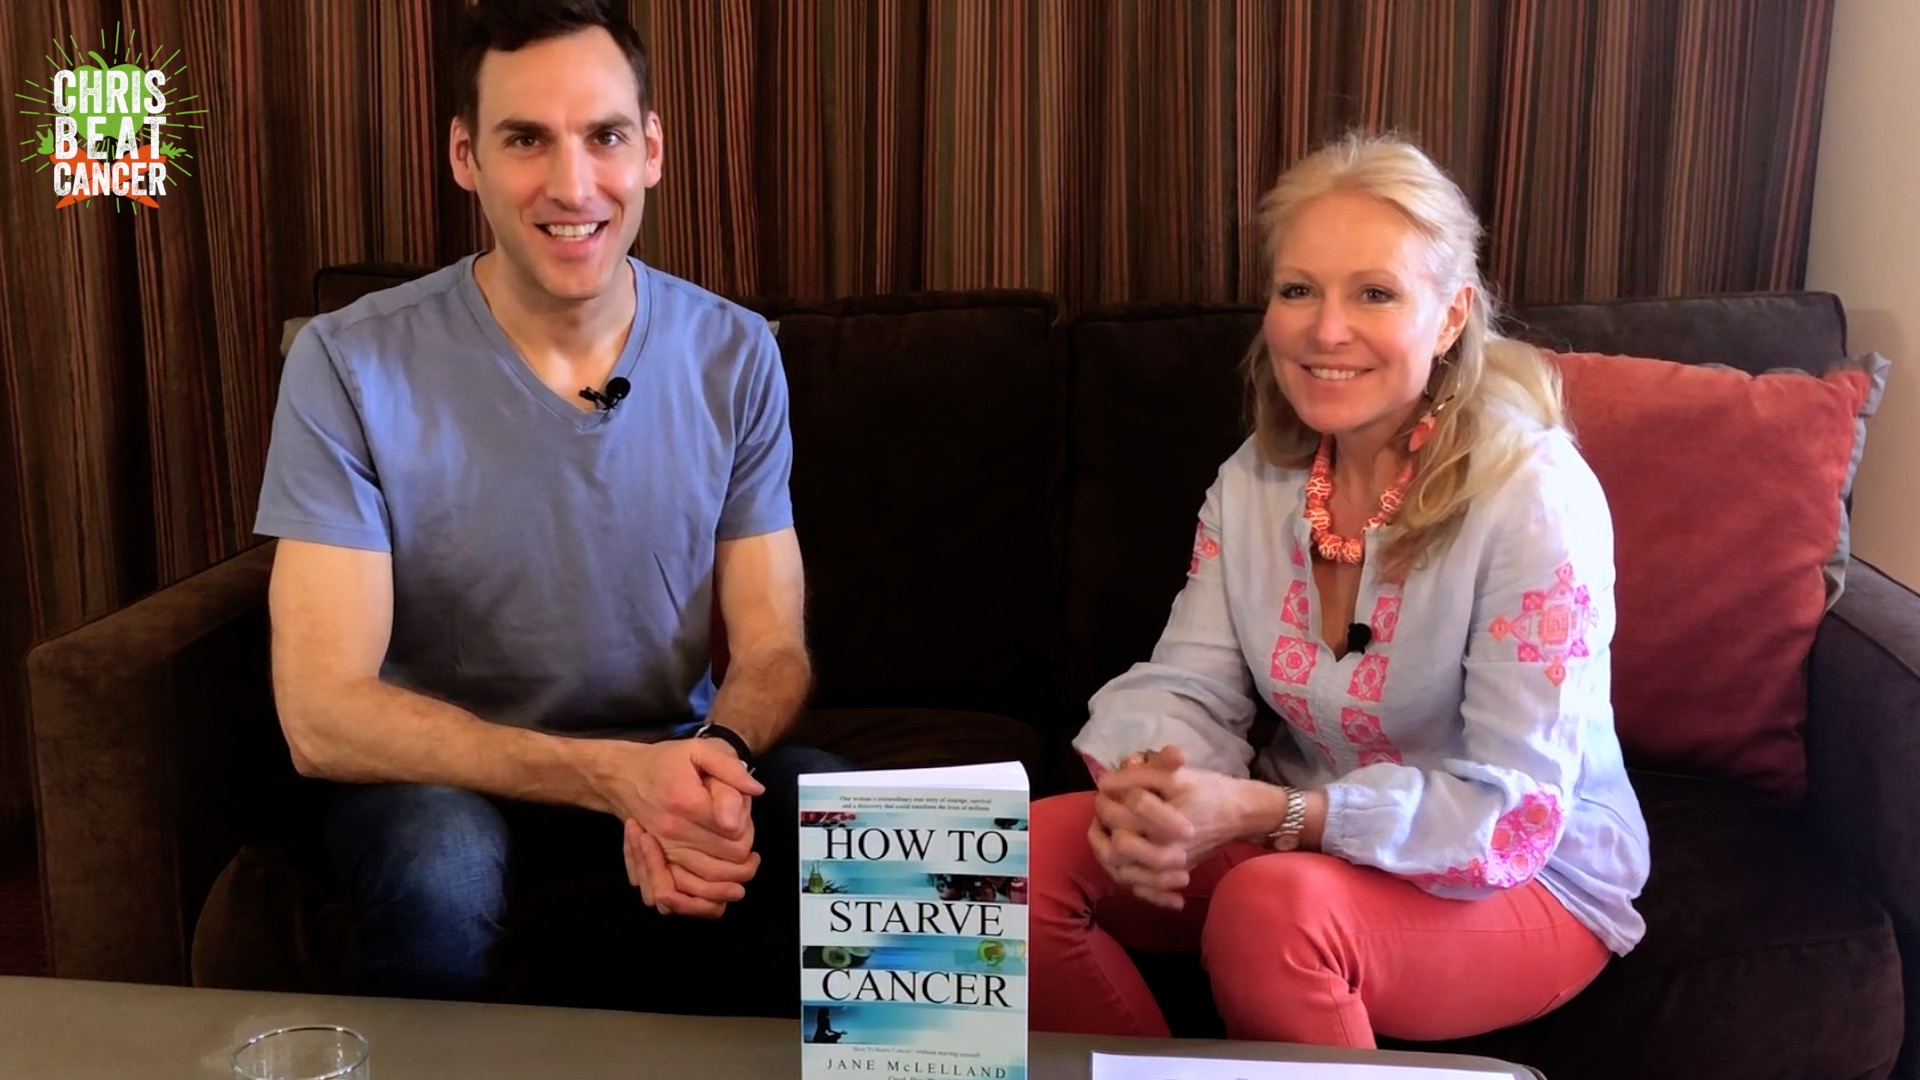 15-year Survivor Jane McLelland on How to Starve Cancer with